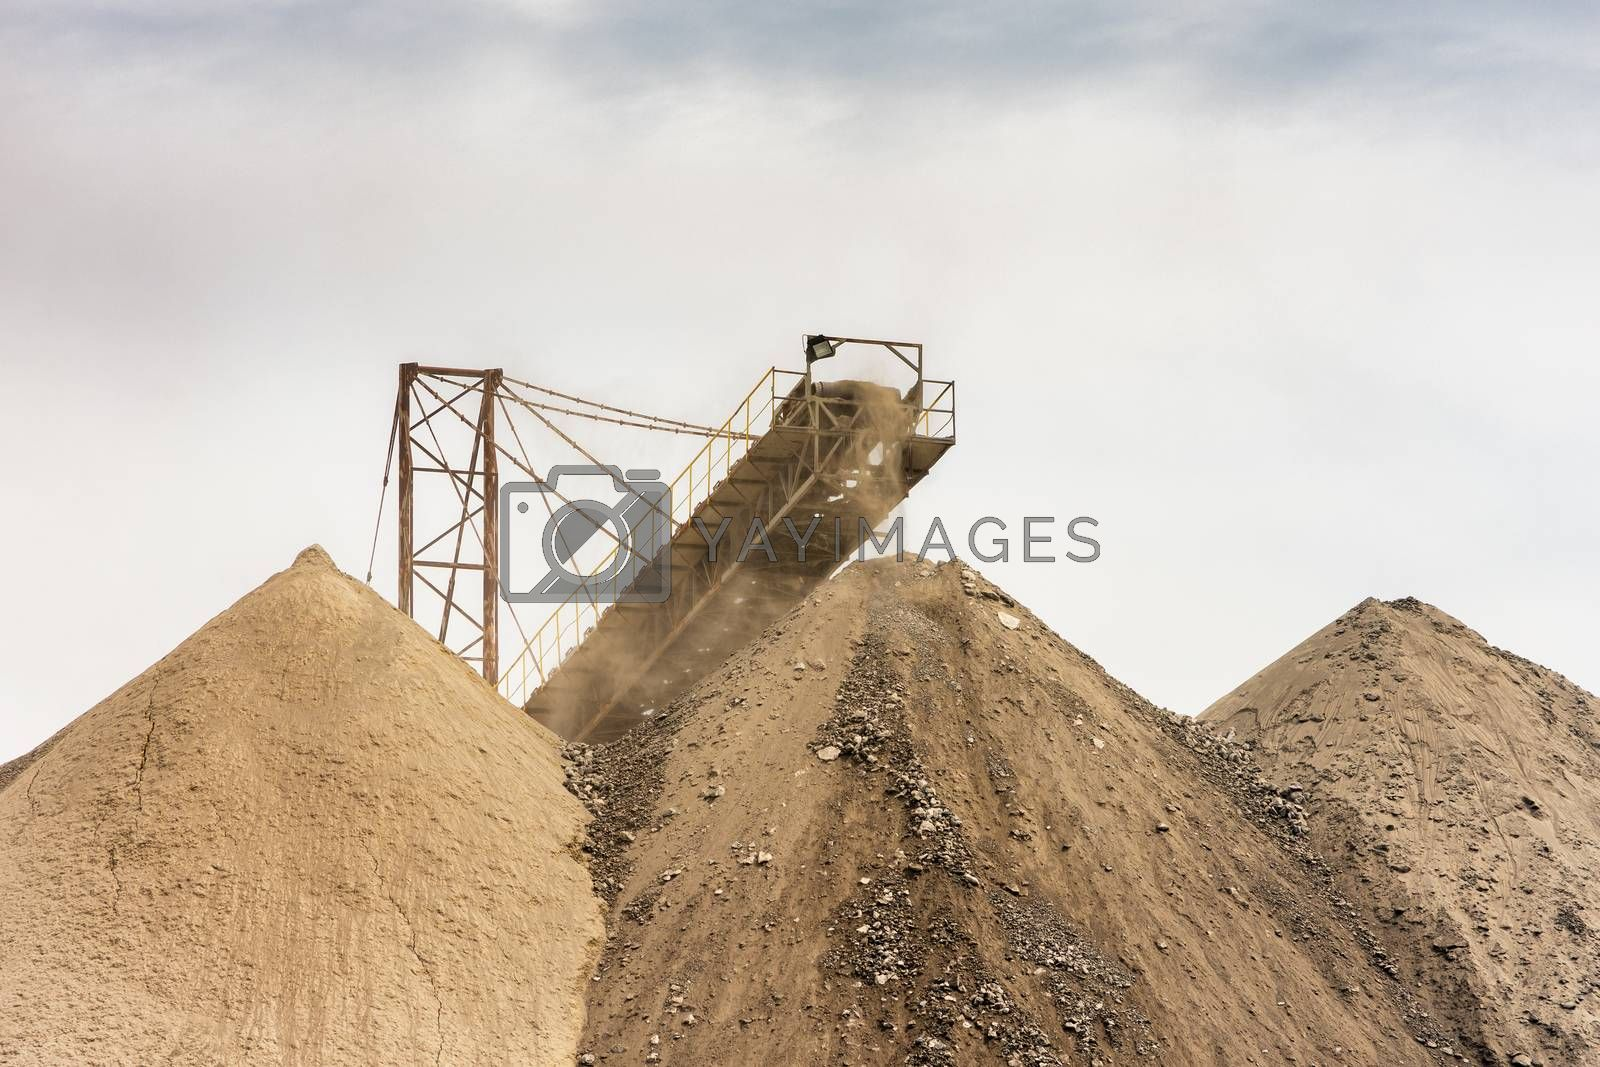 Bor / Serbia - July 13, 2019: Heaps of tailings and mine dumps in Bor, Eastern Serbia, one of the largest copper mines in Europe owned by Chinese mining company Zijin Mining Group